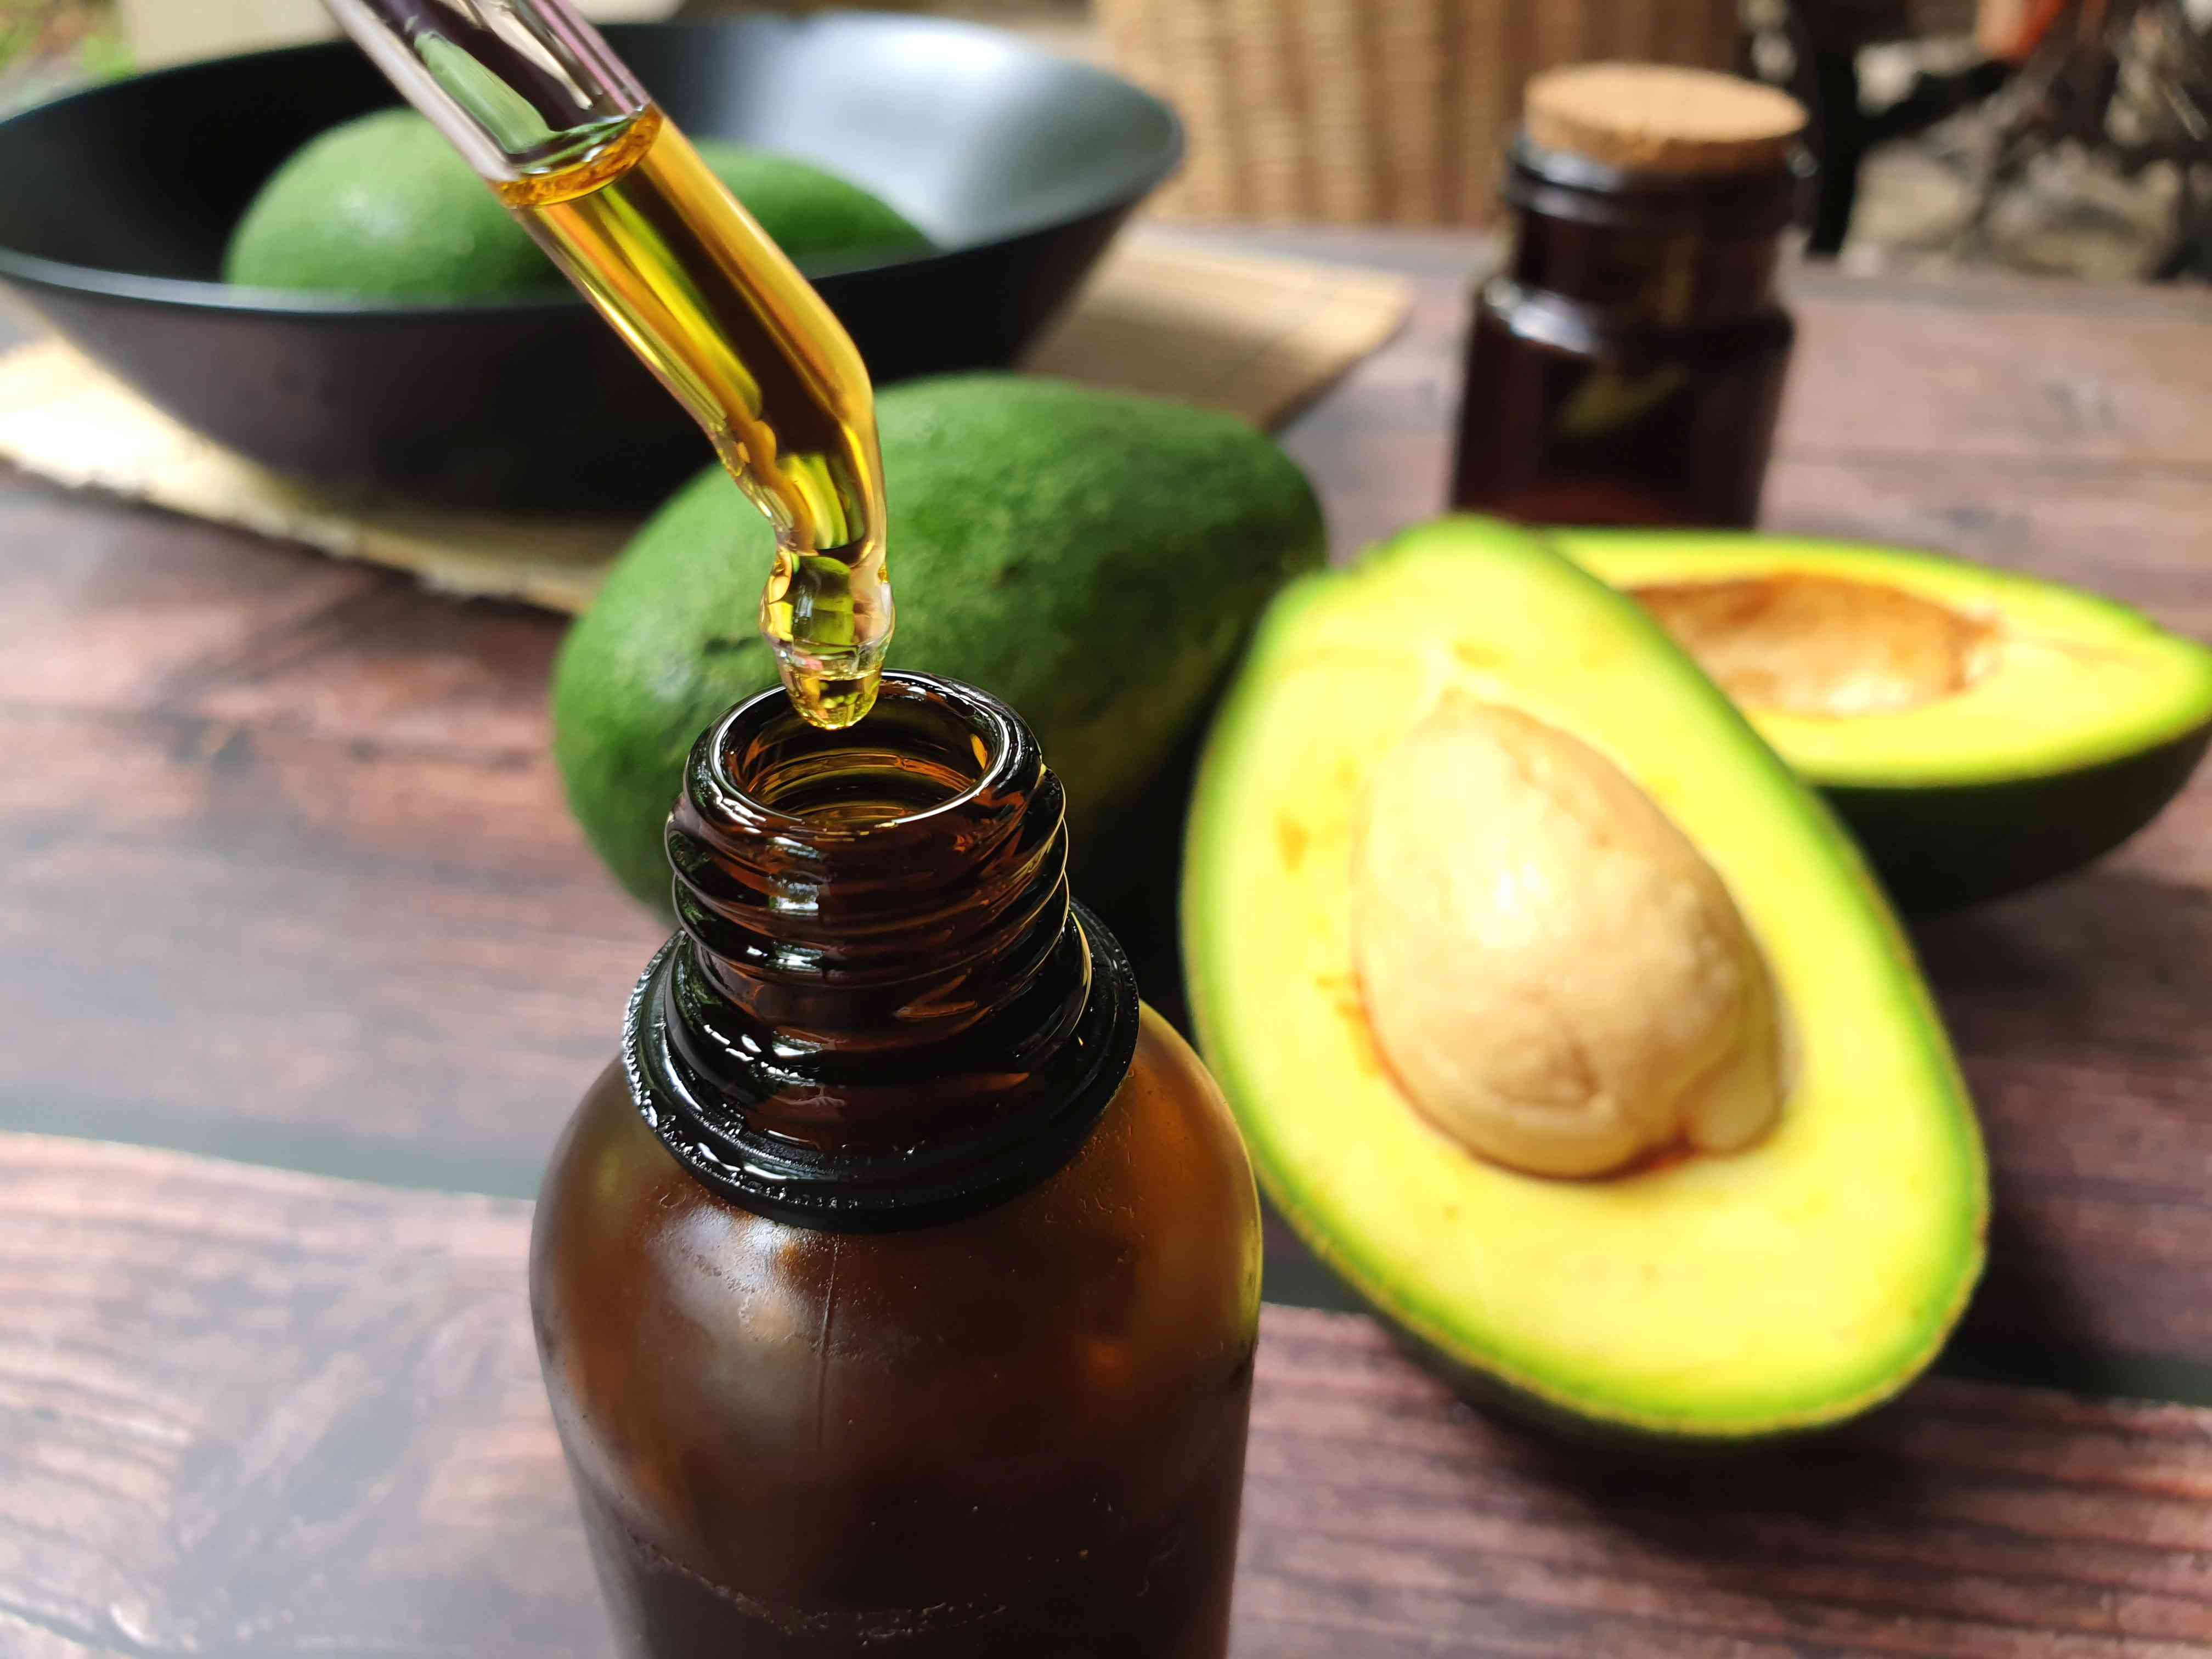 Avocados And Avocado Oil On Wooden Table